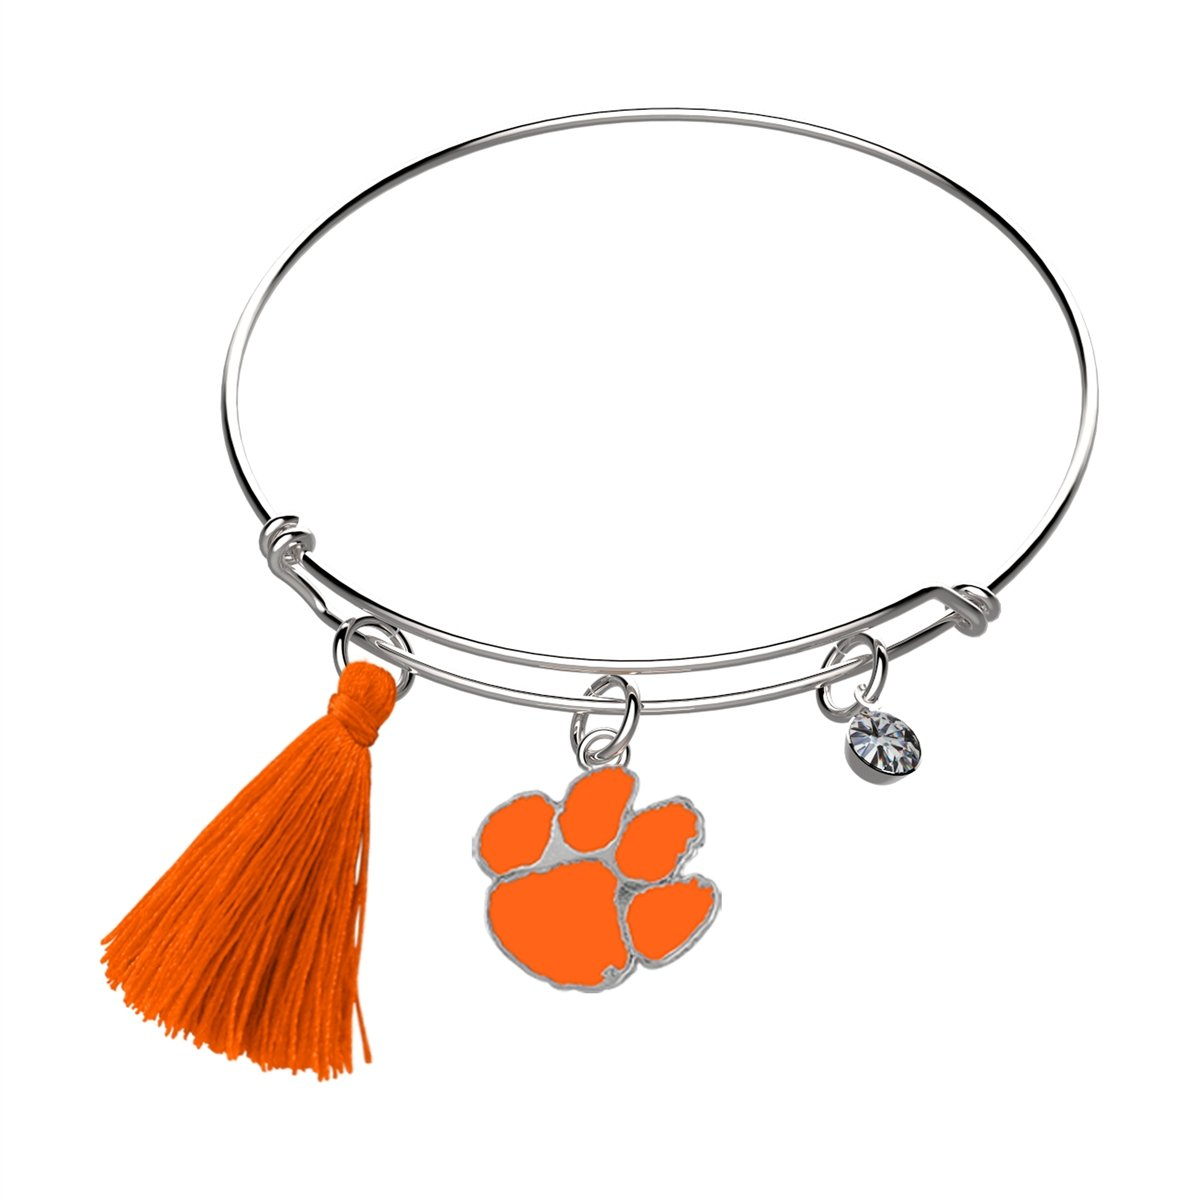 Bambi Tassel Bracelet With Orange Tassel, Paw, and Crystal - Mr. Knickerbocker